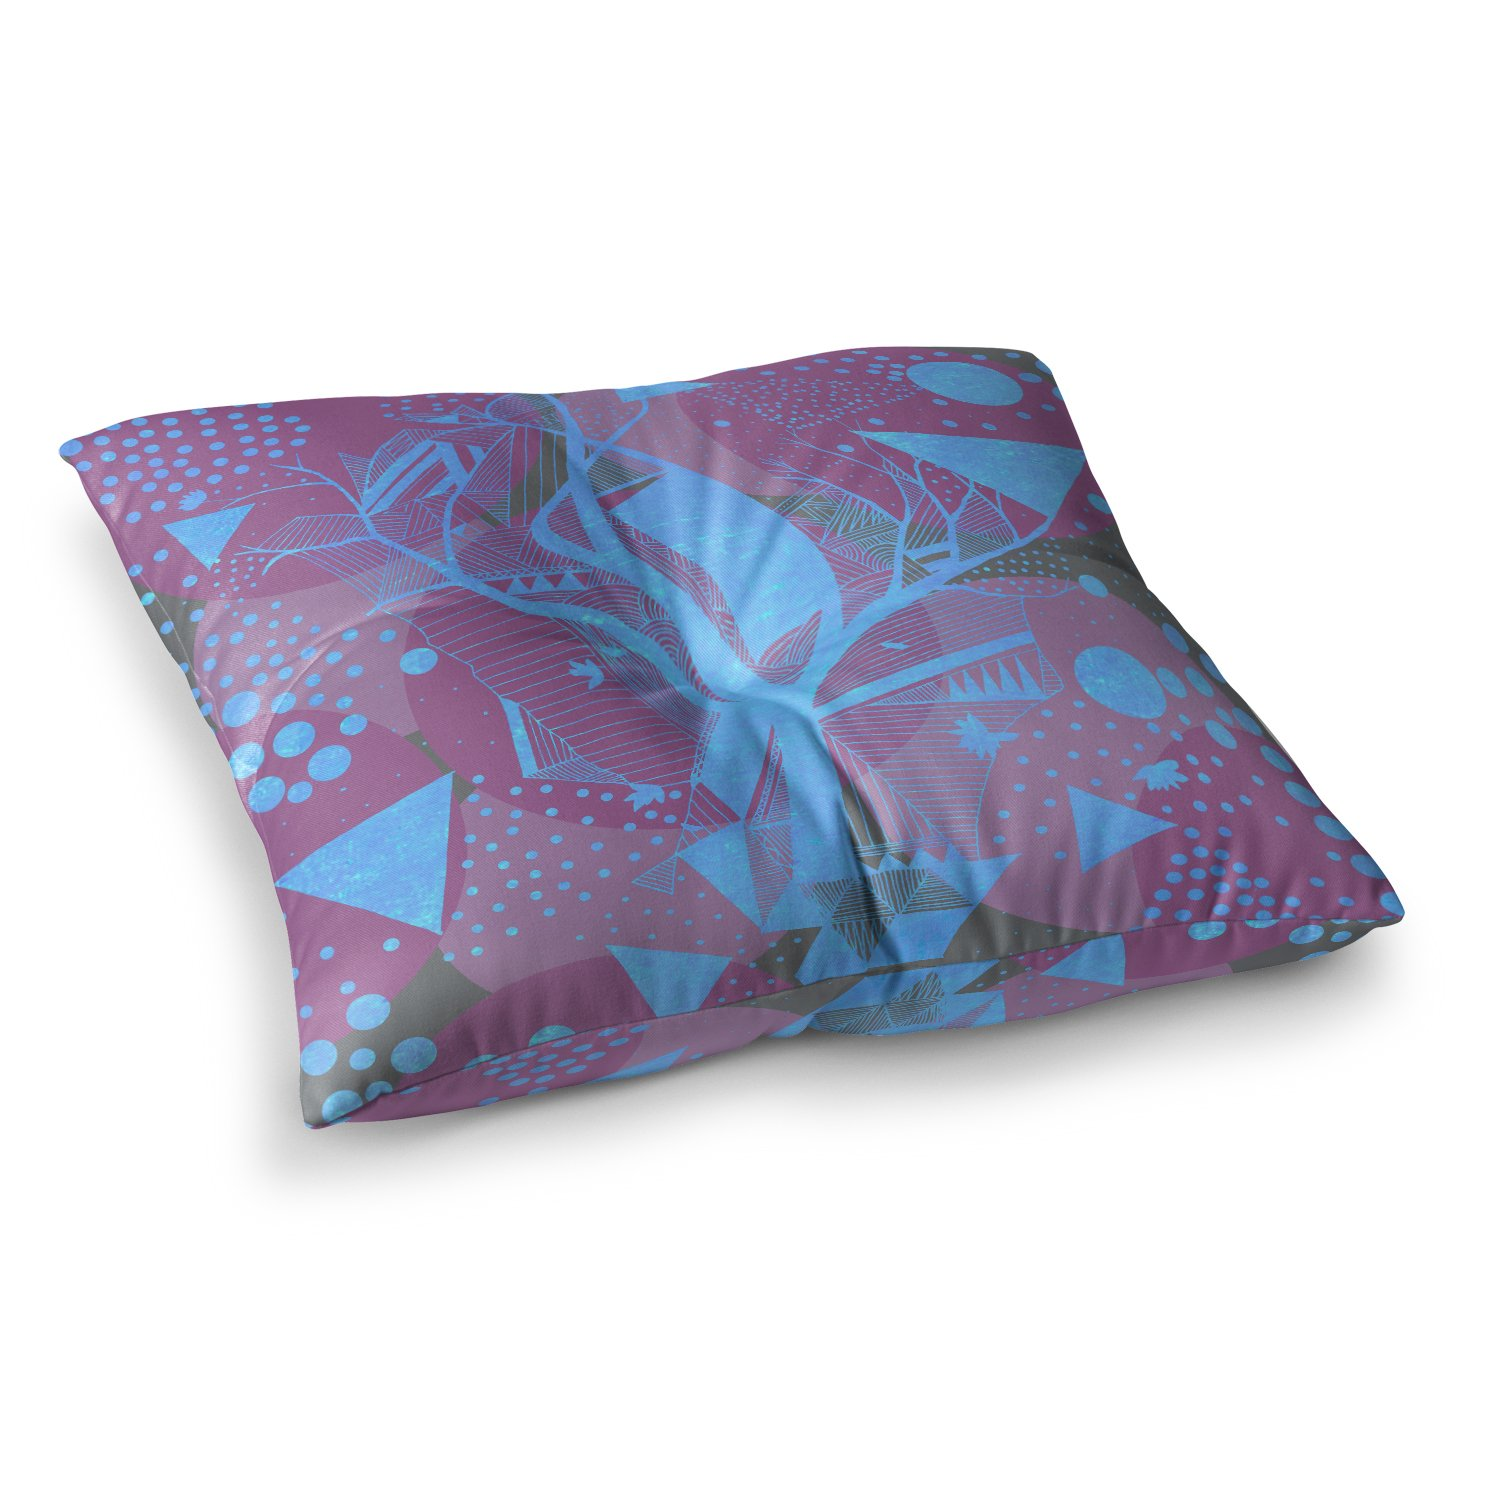 23 x 23 Square Floor Pillow Kess InHouse Marianna Tankelevich Dancing Shapes Purple Blue